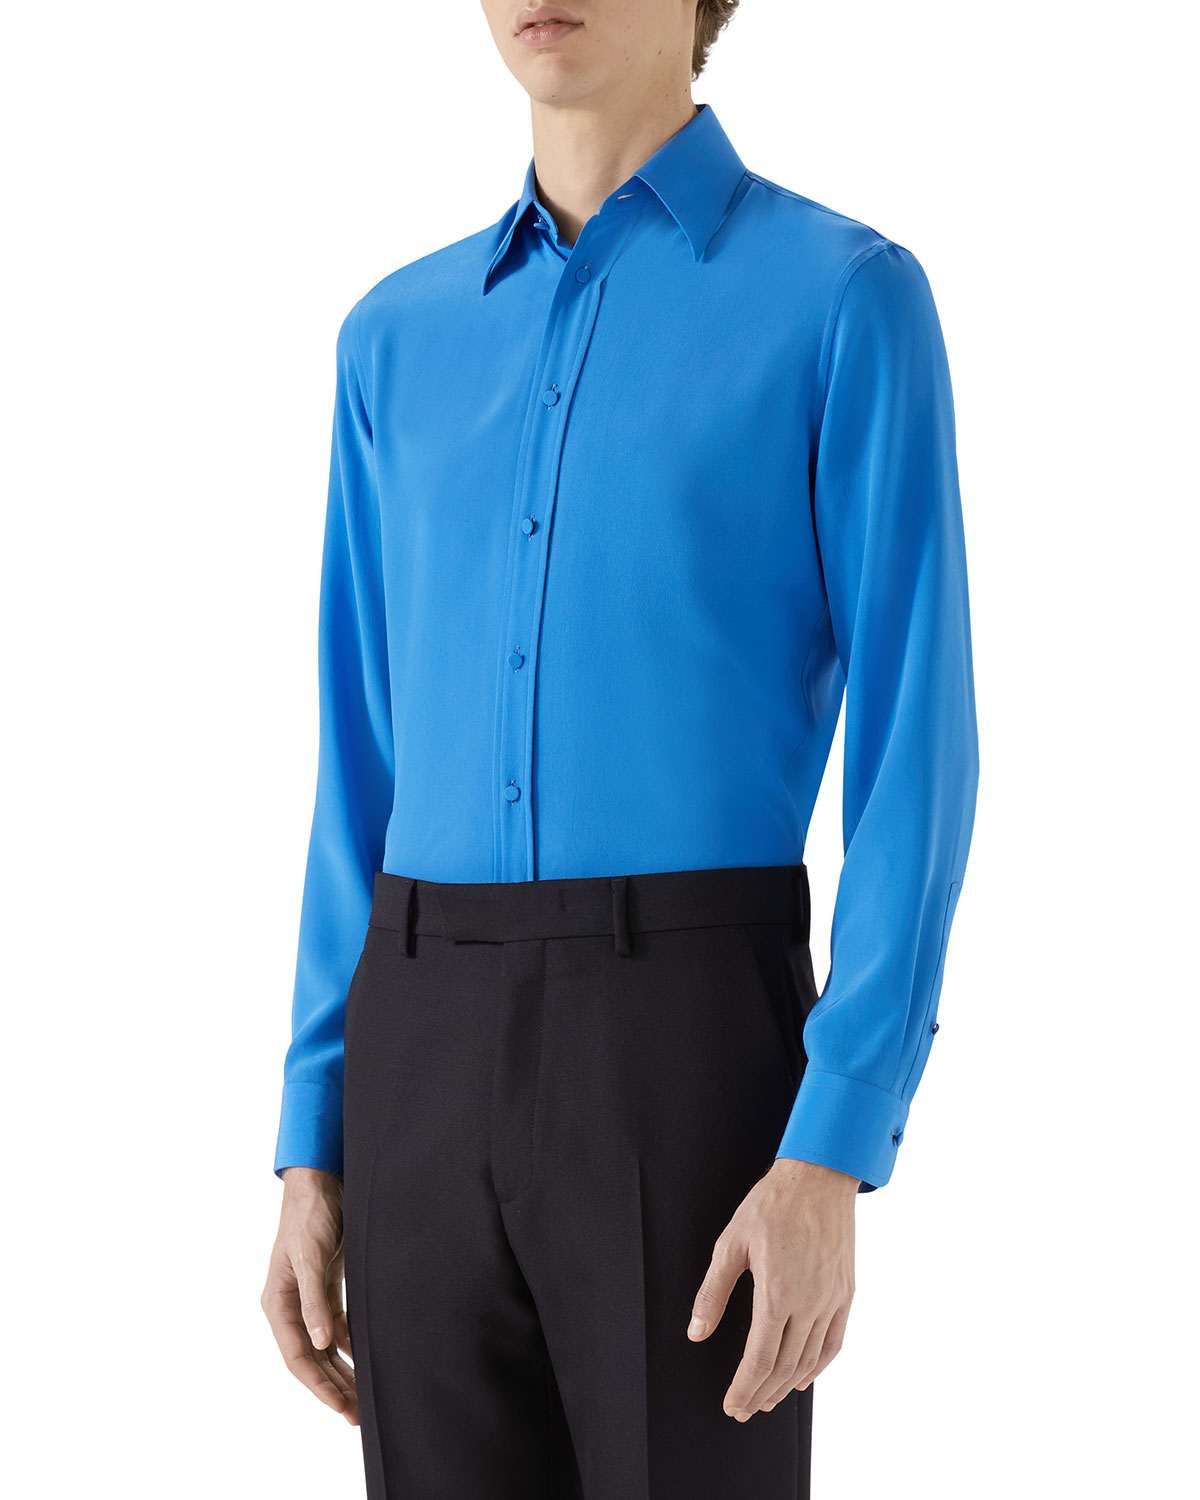 Gucci Men's Silk Crepe Sport Shirt